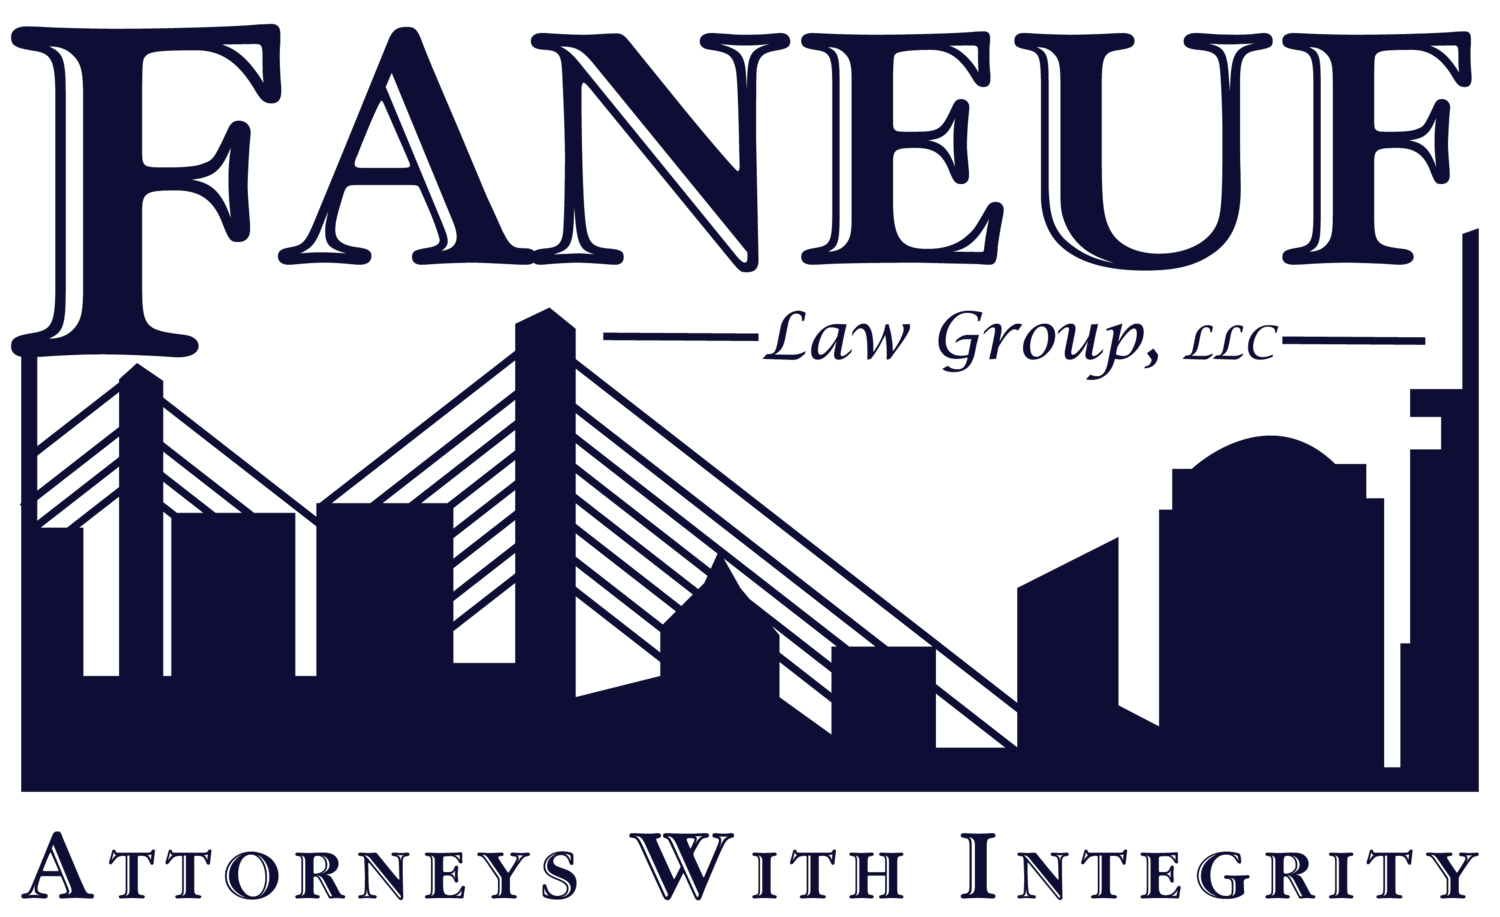 Faneuf Law Group